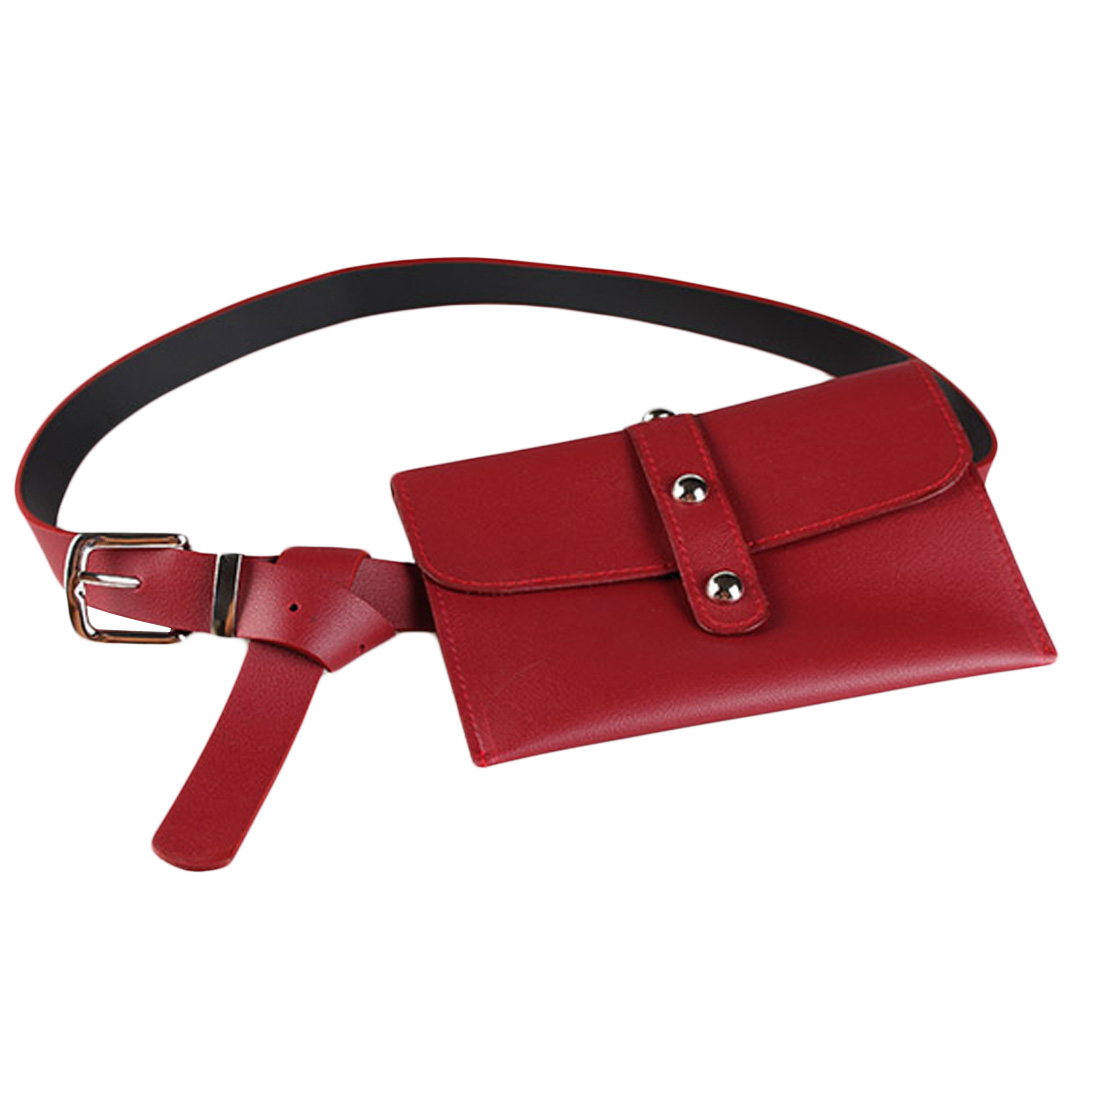 4c03db93accc US $12.9 |Emarald Vintage Leather Belt Bag Women Leather Waist Bag Fanny  Pack Women Casual Fashion Female Belt Phone Women Bum Bag Purse -in Waist  ...